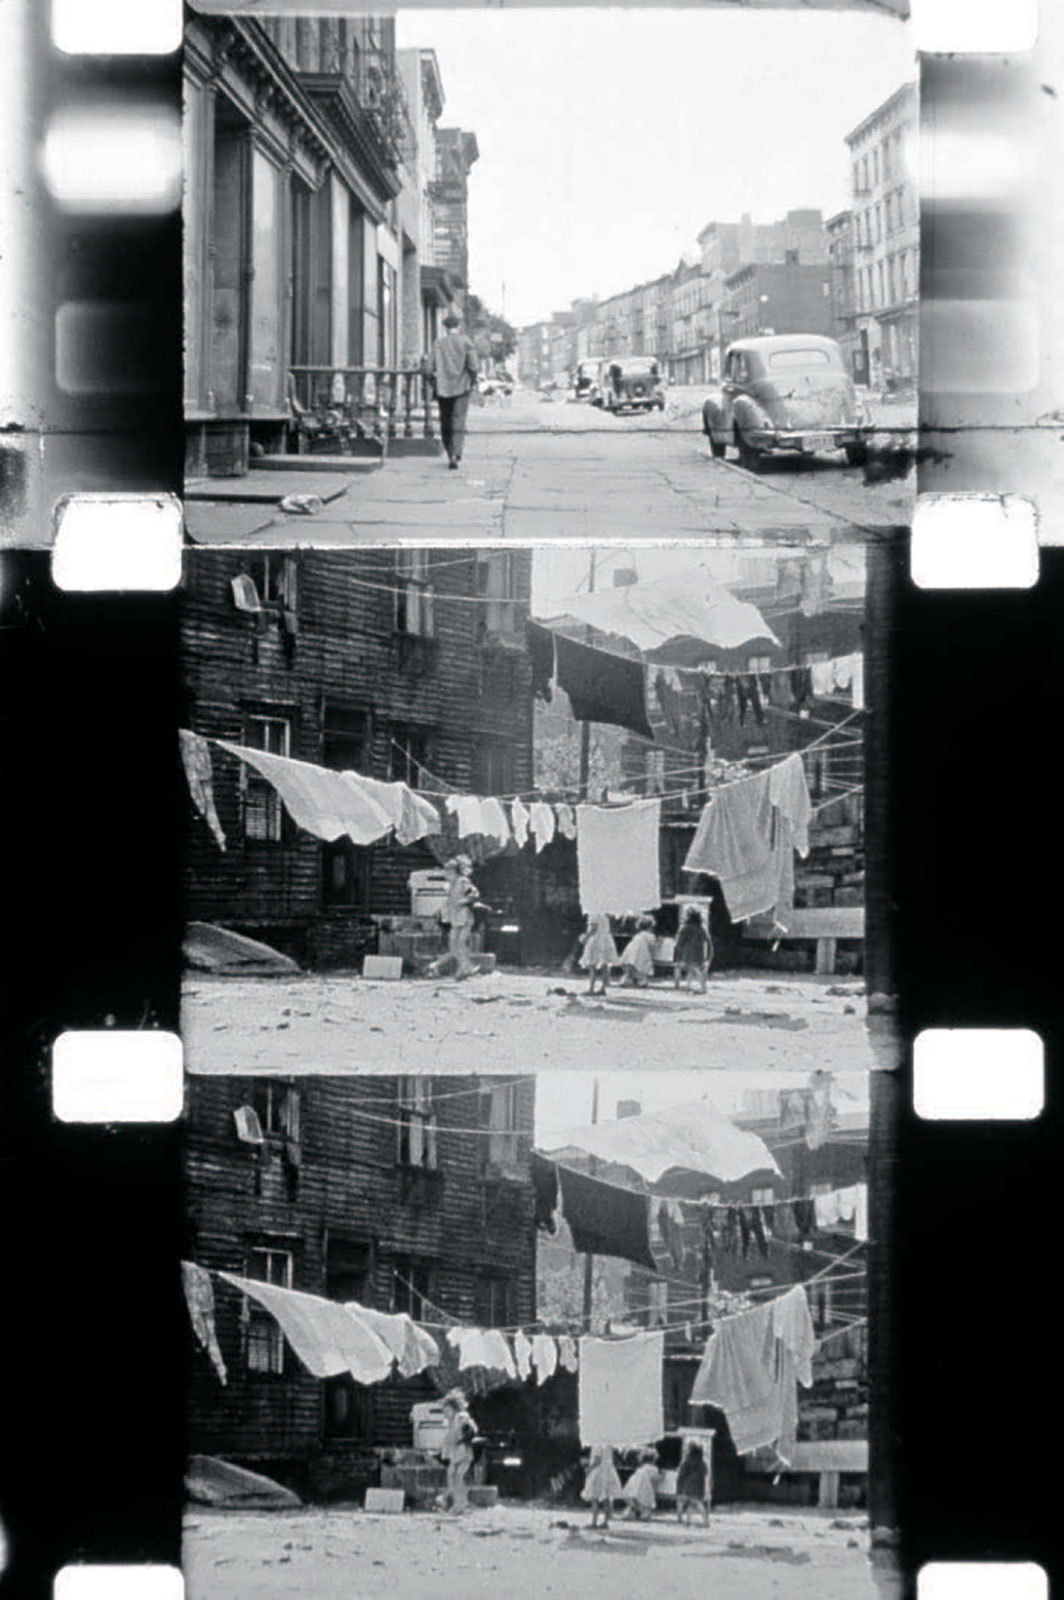 Jonas Mekas, Lost Lost Lost: Rabbit Shit Haikus and Fool's Haikus, 1976, 16 mm, color and black-and-white, sound, 180 minutes.